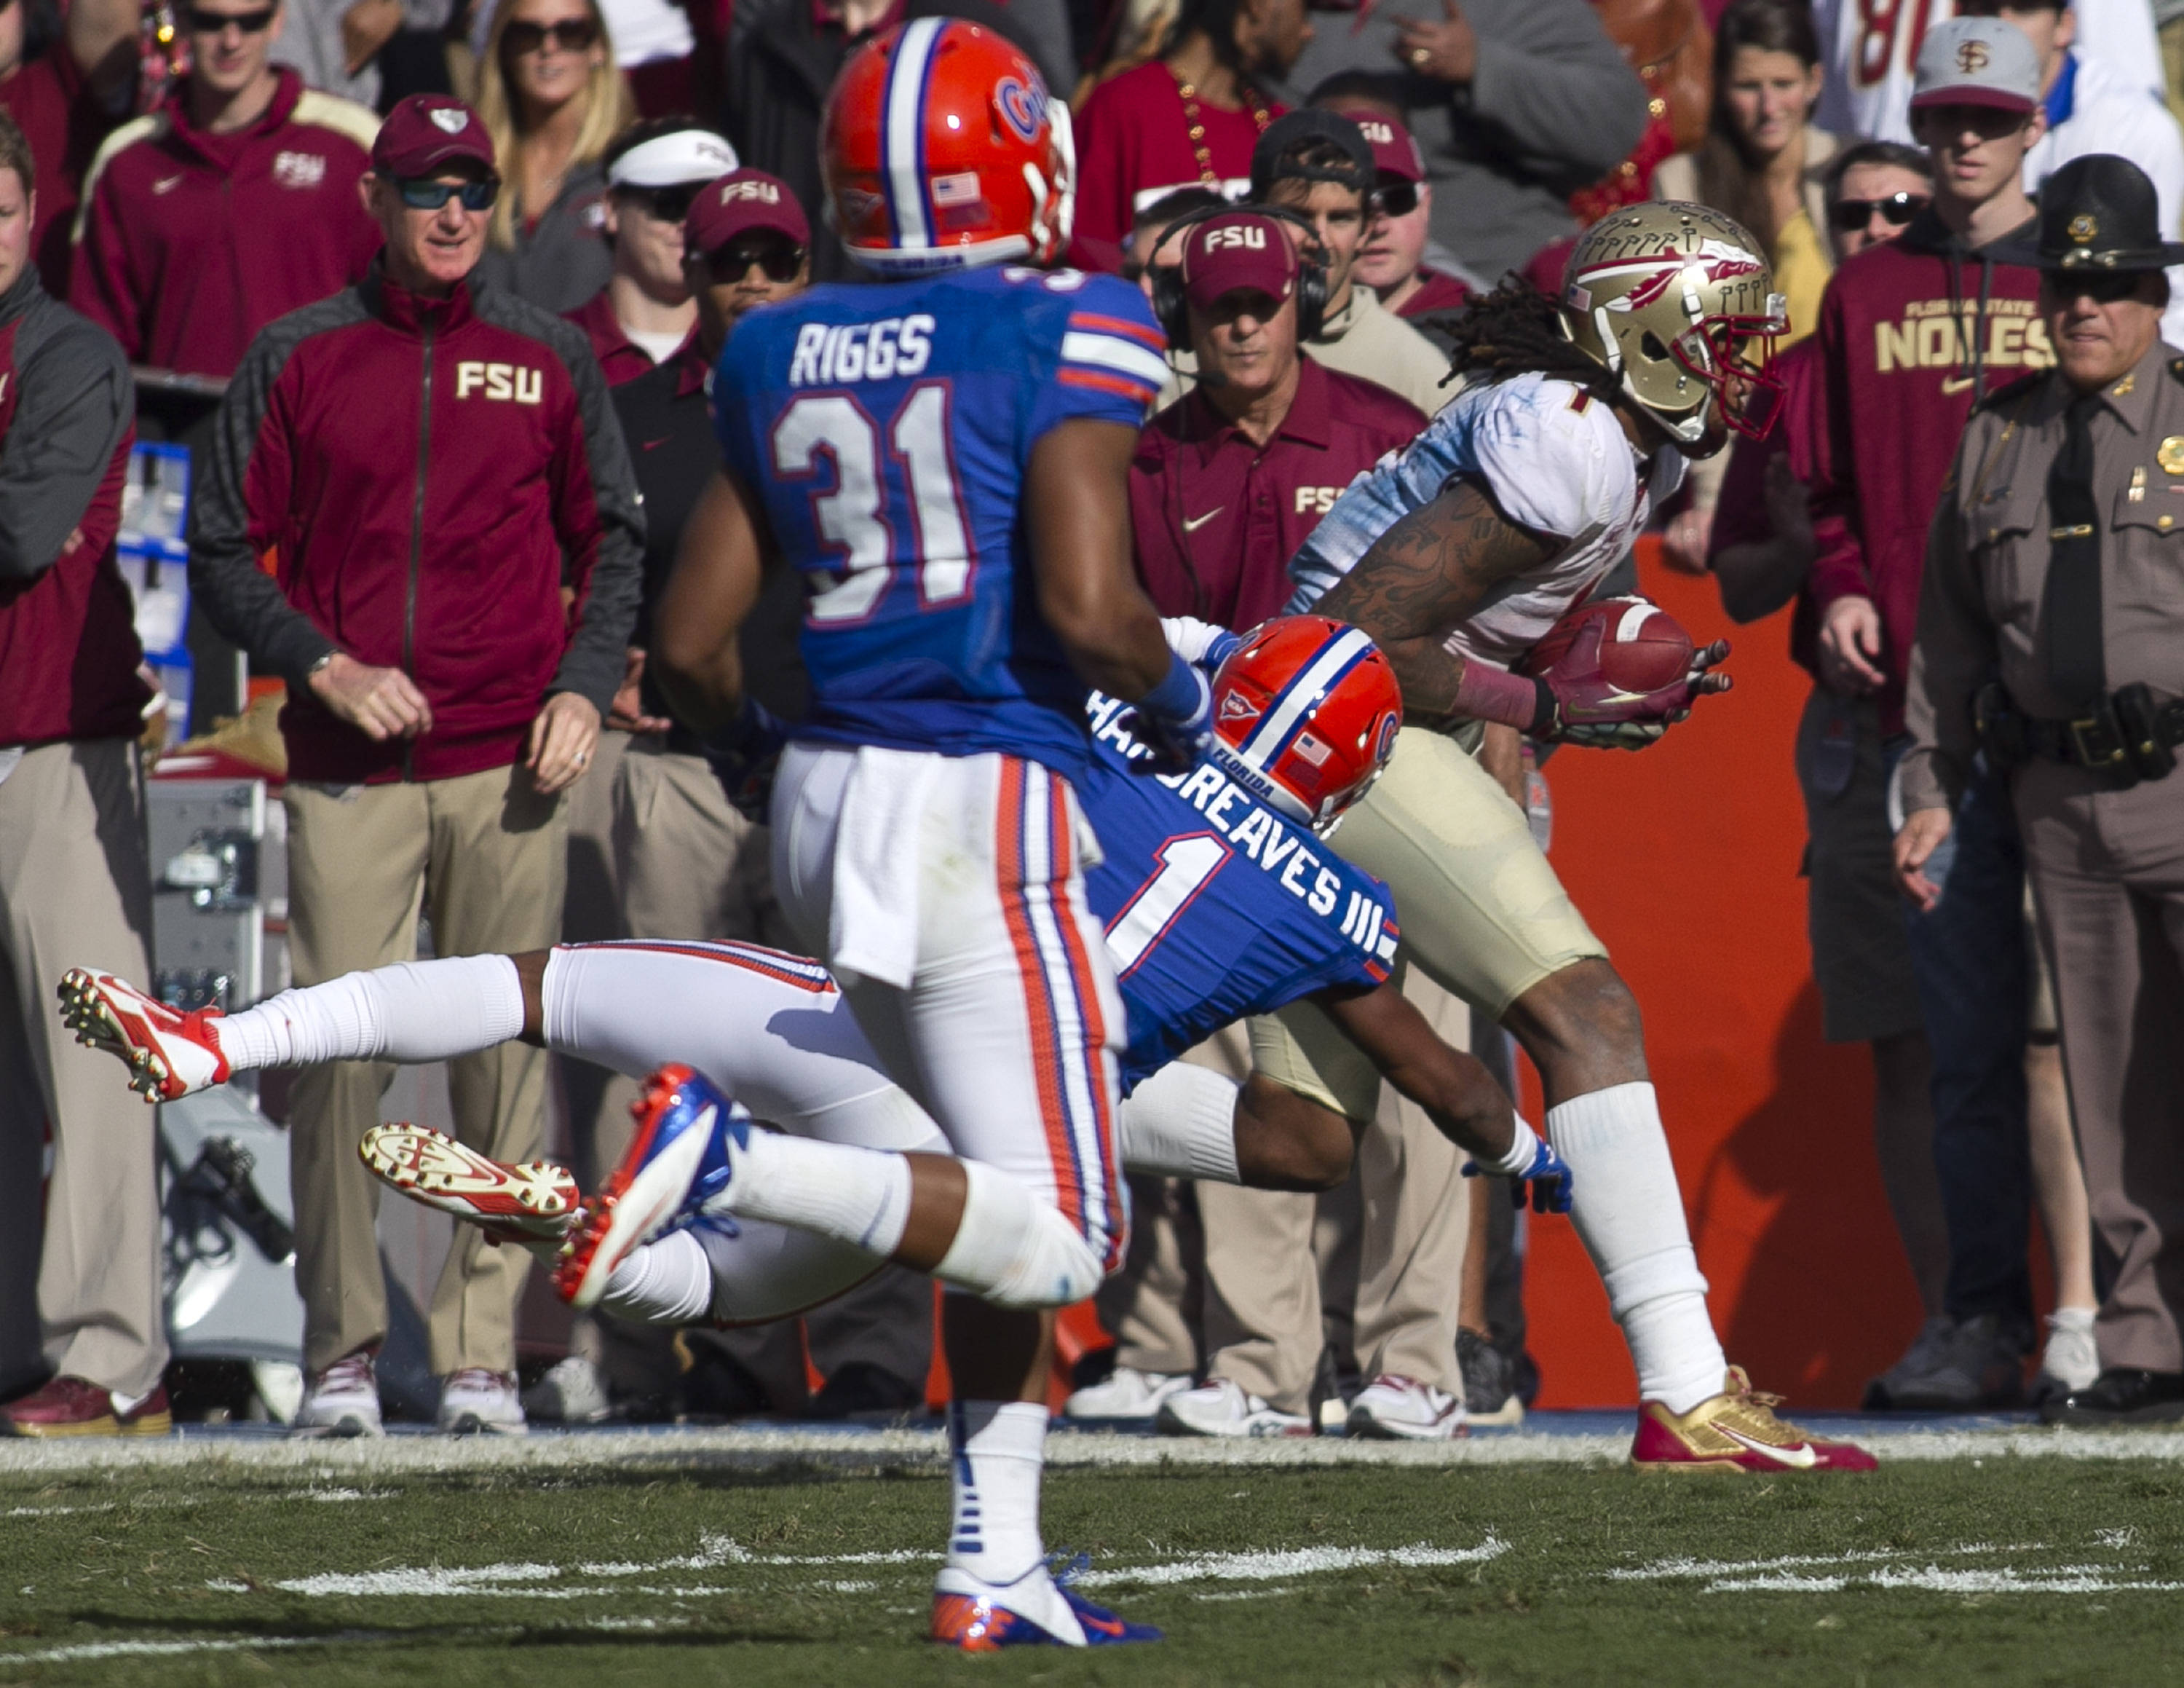 Kelvin Benjamin (1) with a drive saving third down catch, FSU vs Florida, 11-30-13,  (Photo by Steve Musco)